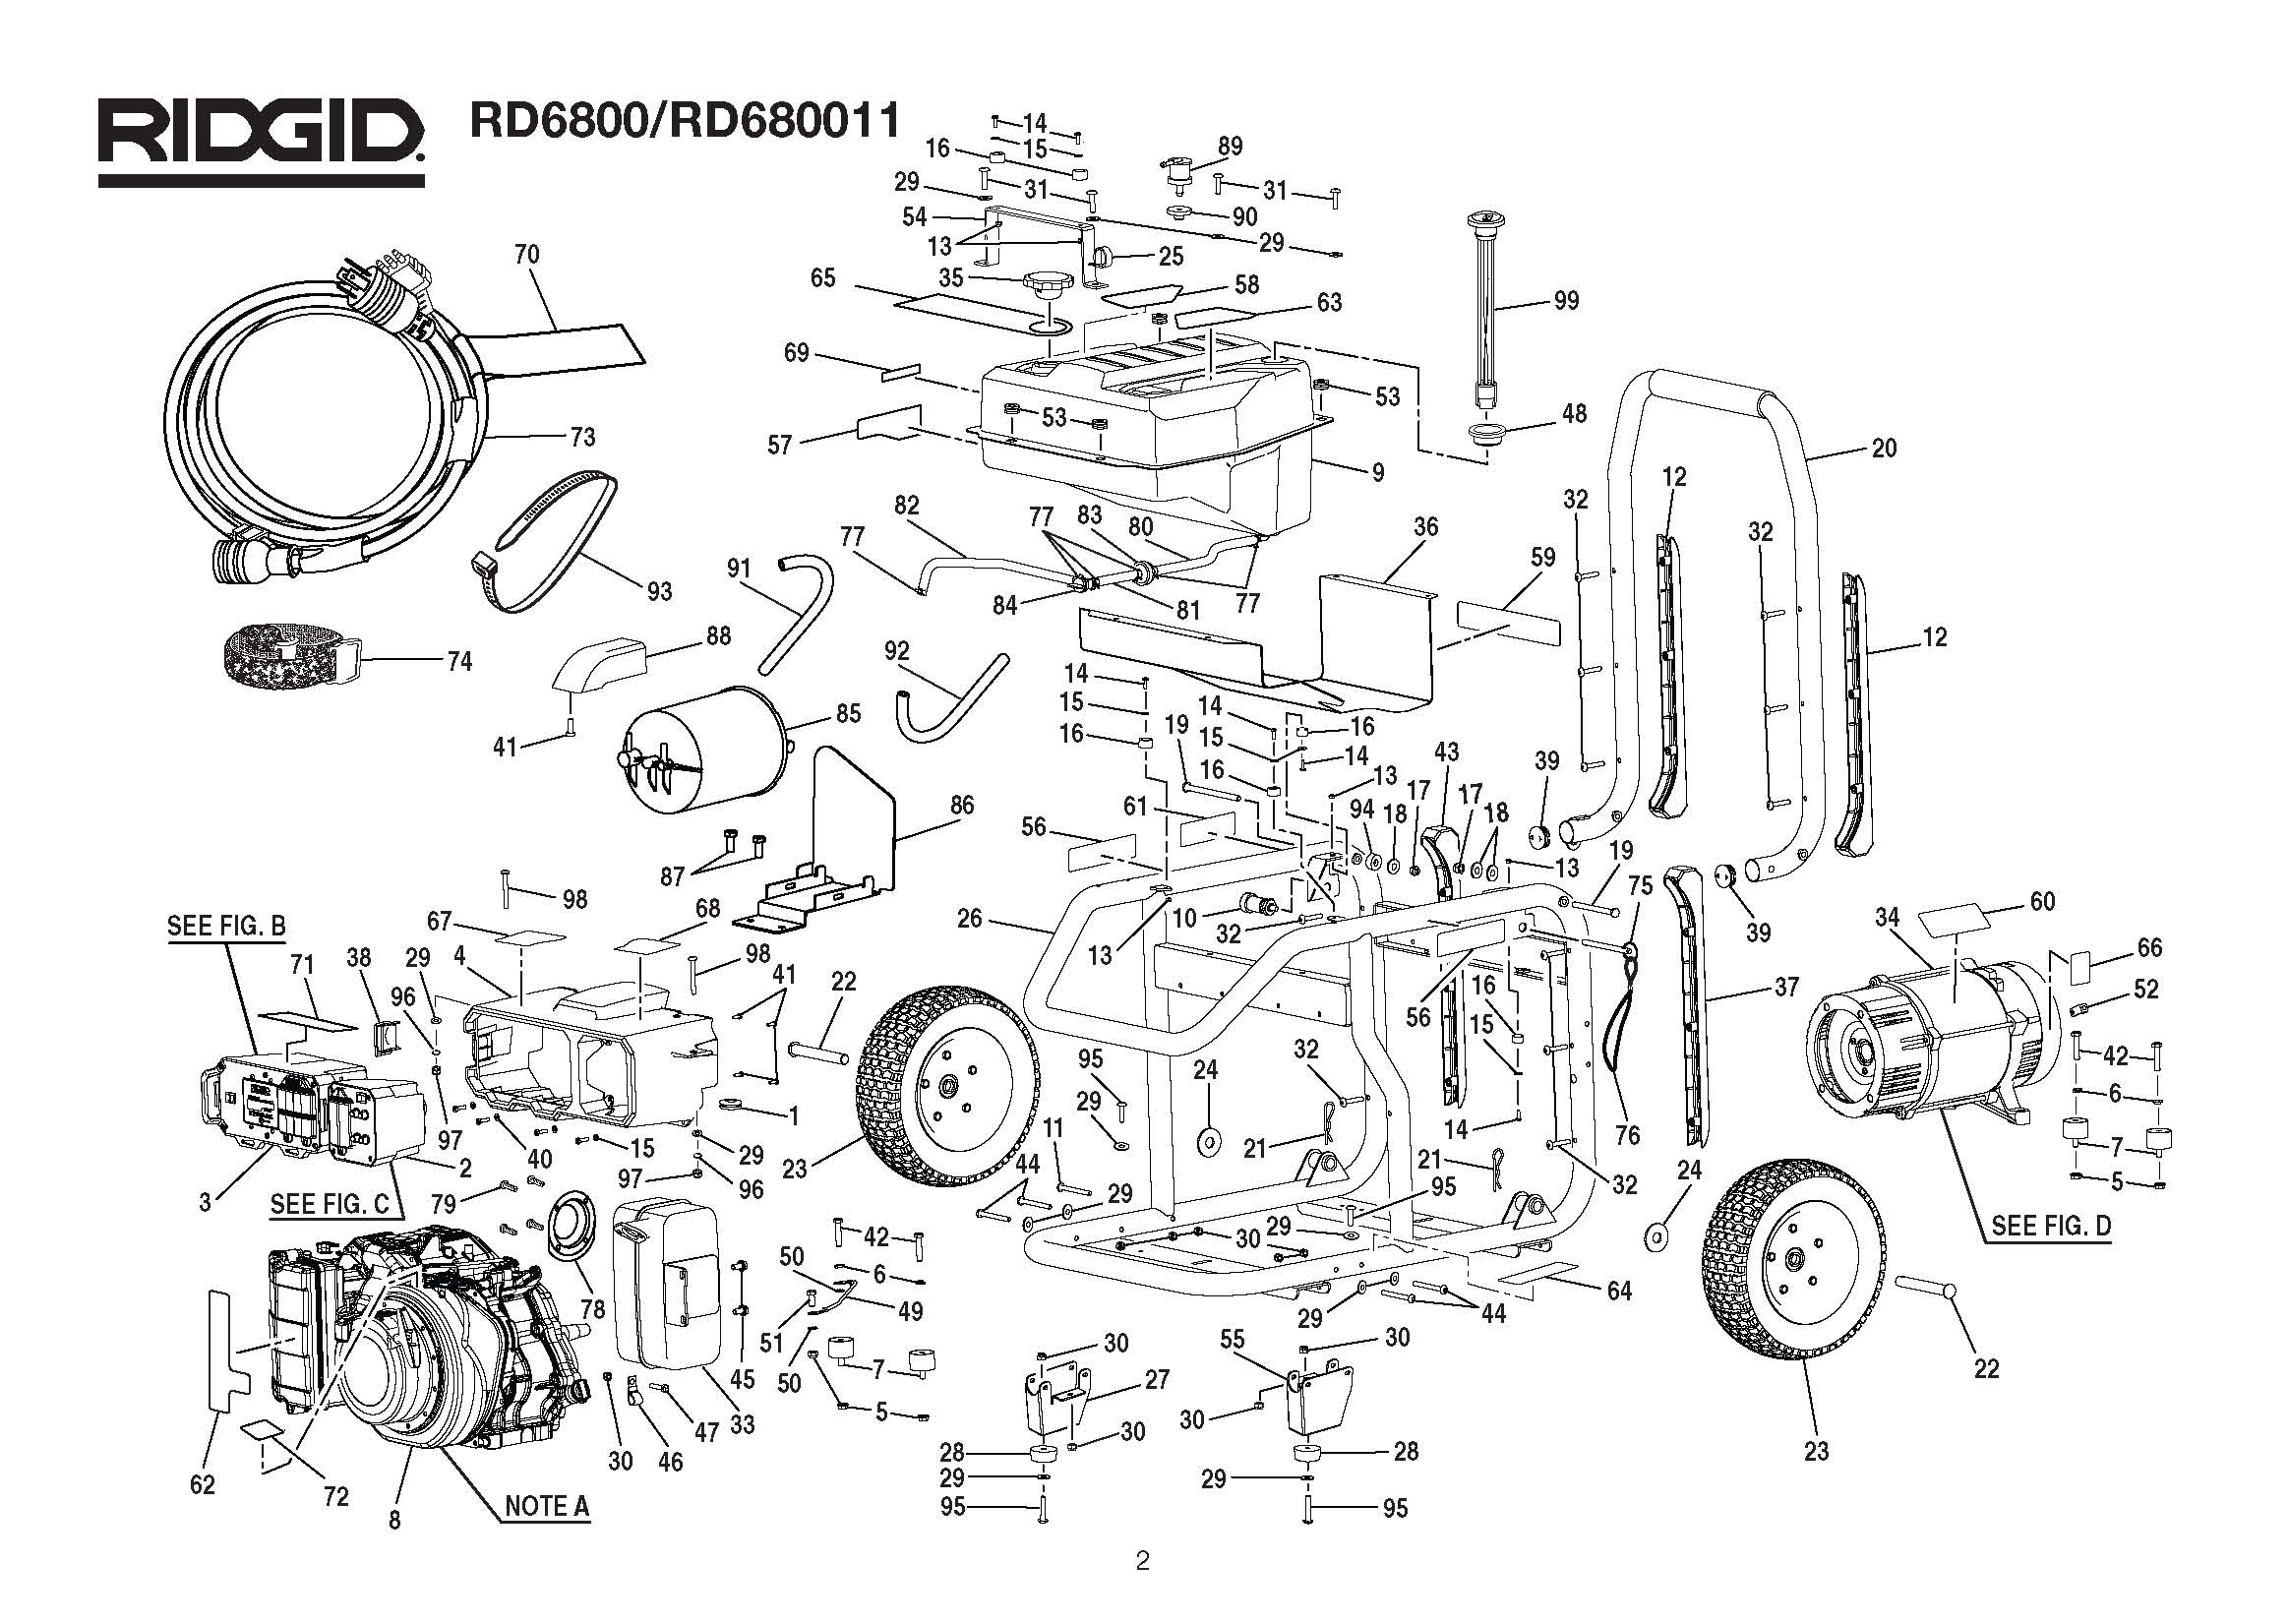 RD6800, RD68011 - Generator Parts schematic